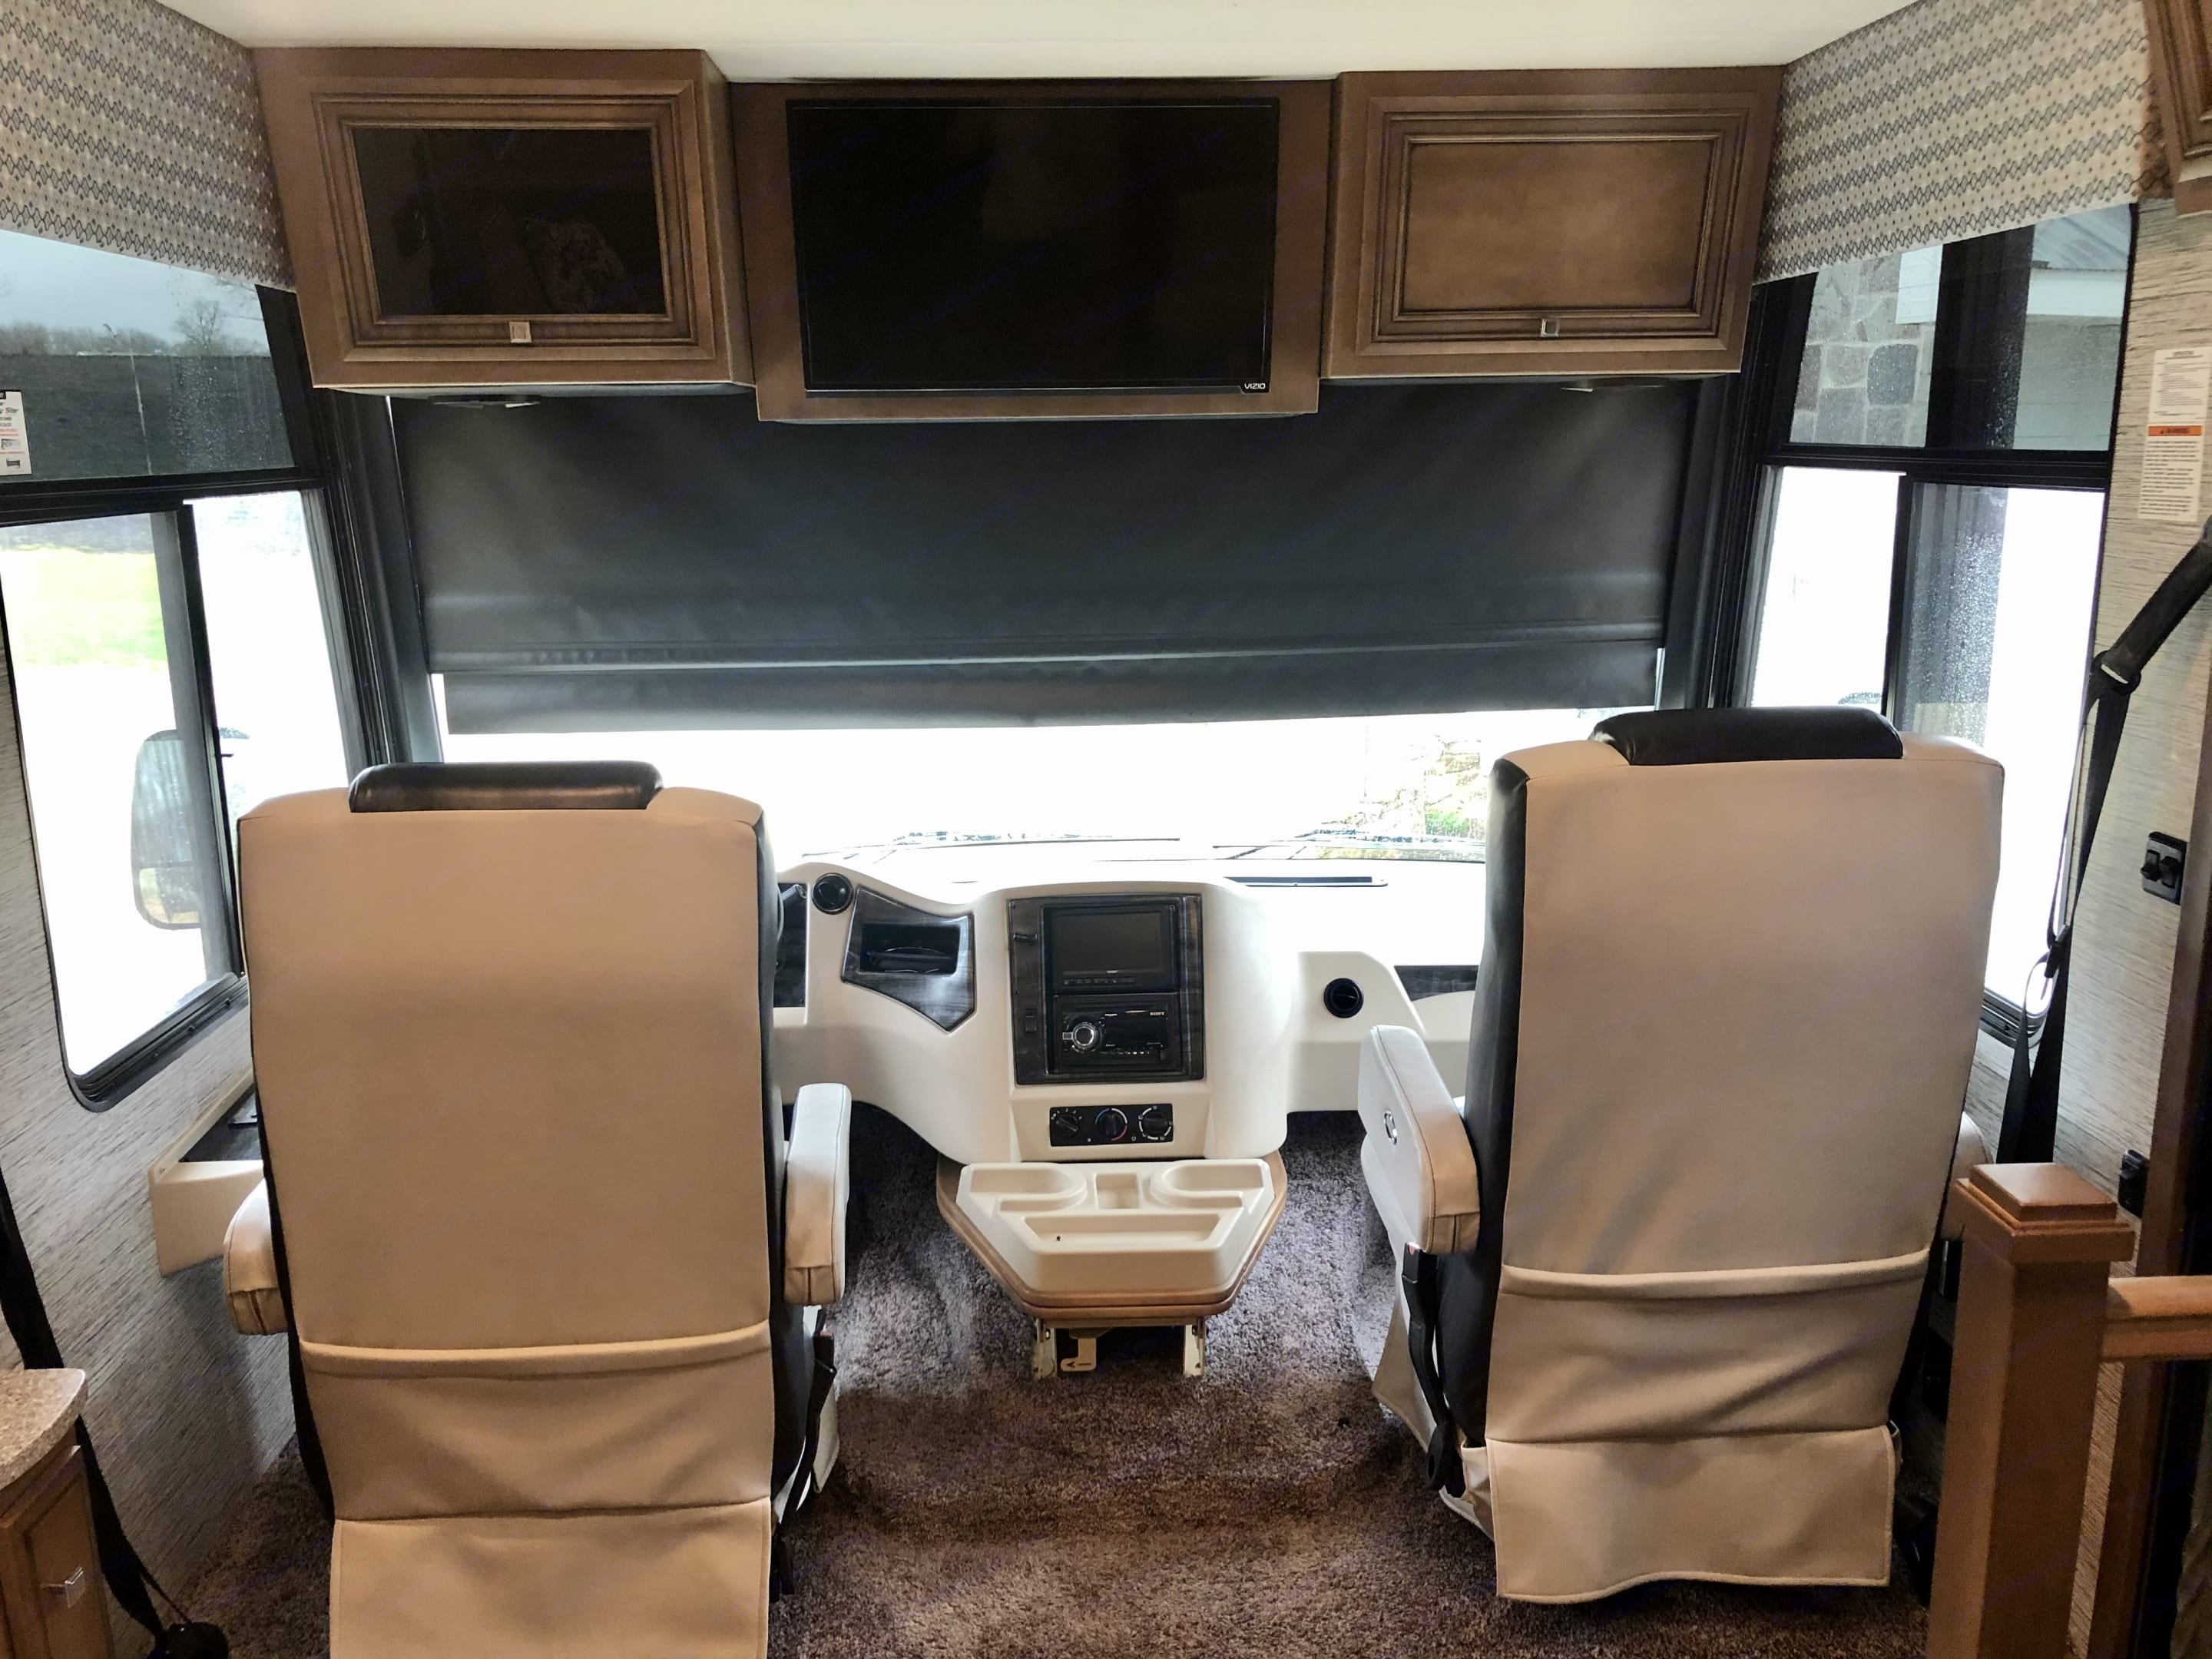 Blackout shades all around for privacy and sun filtering shades for letting light in. Also a TV for movie watching when parked. . Newmar Bay Star 2019